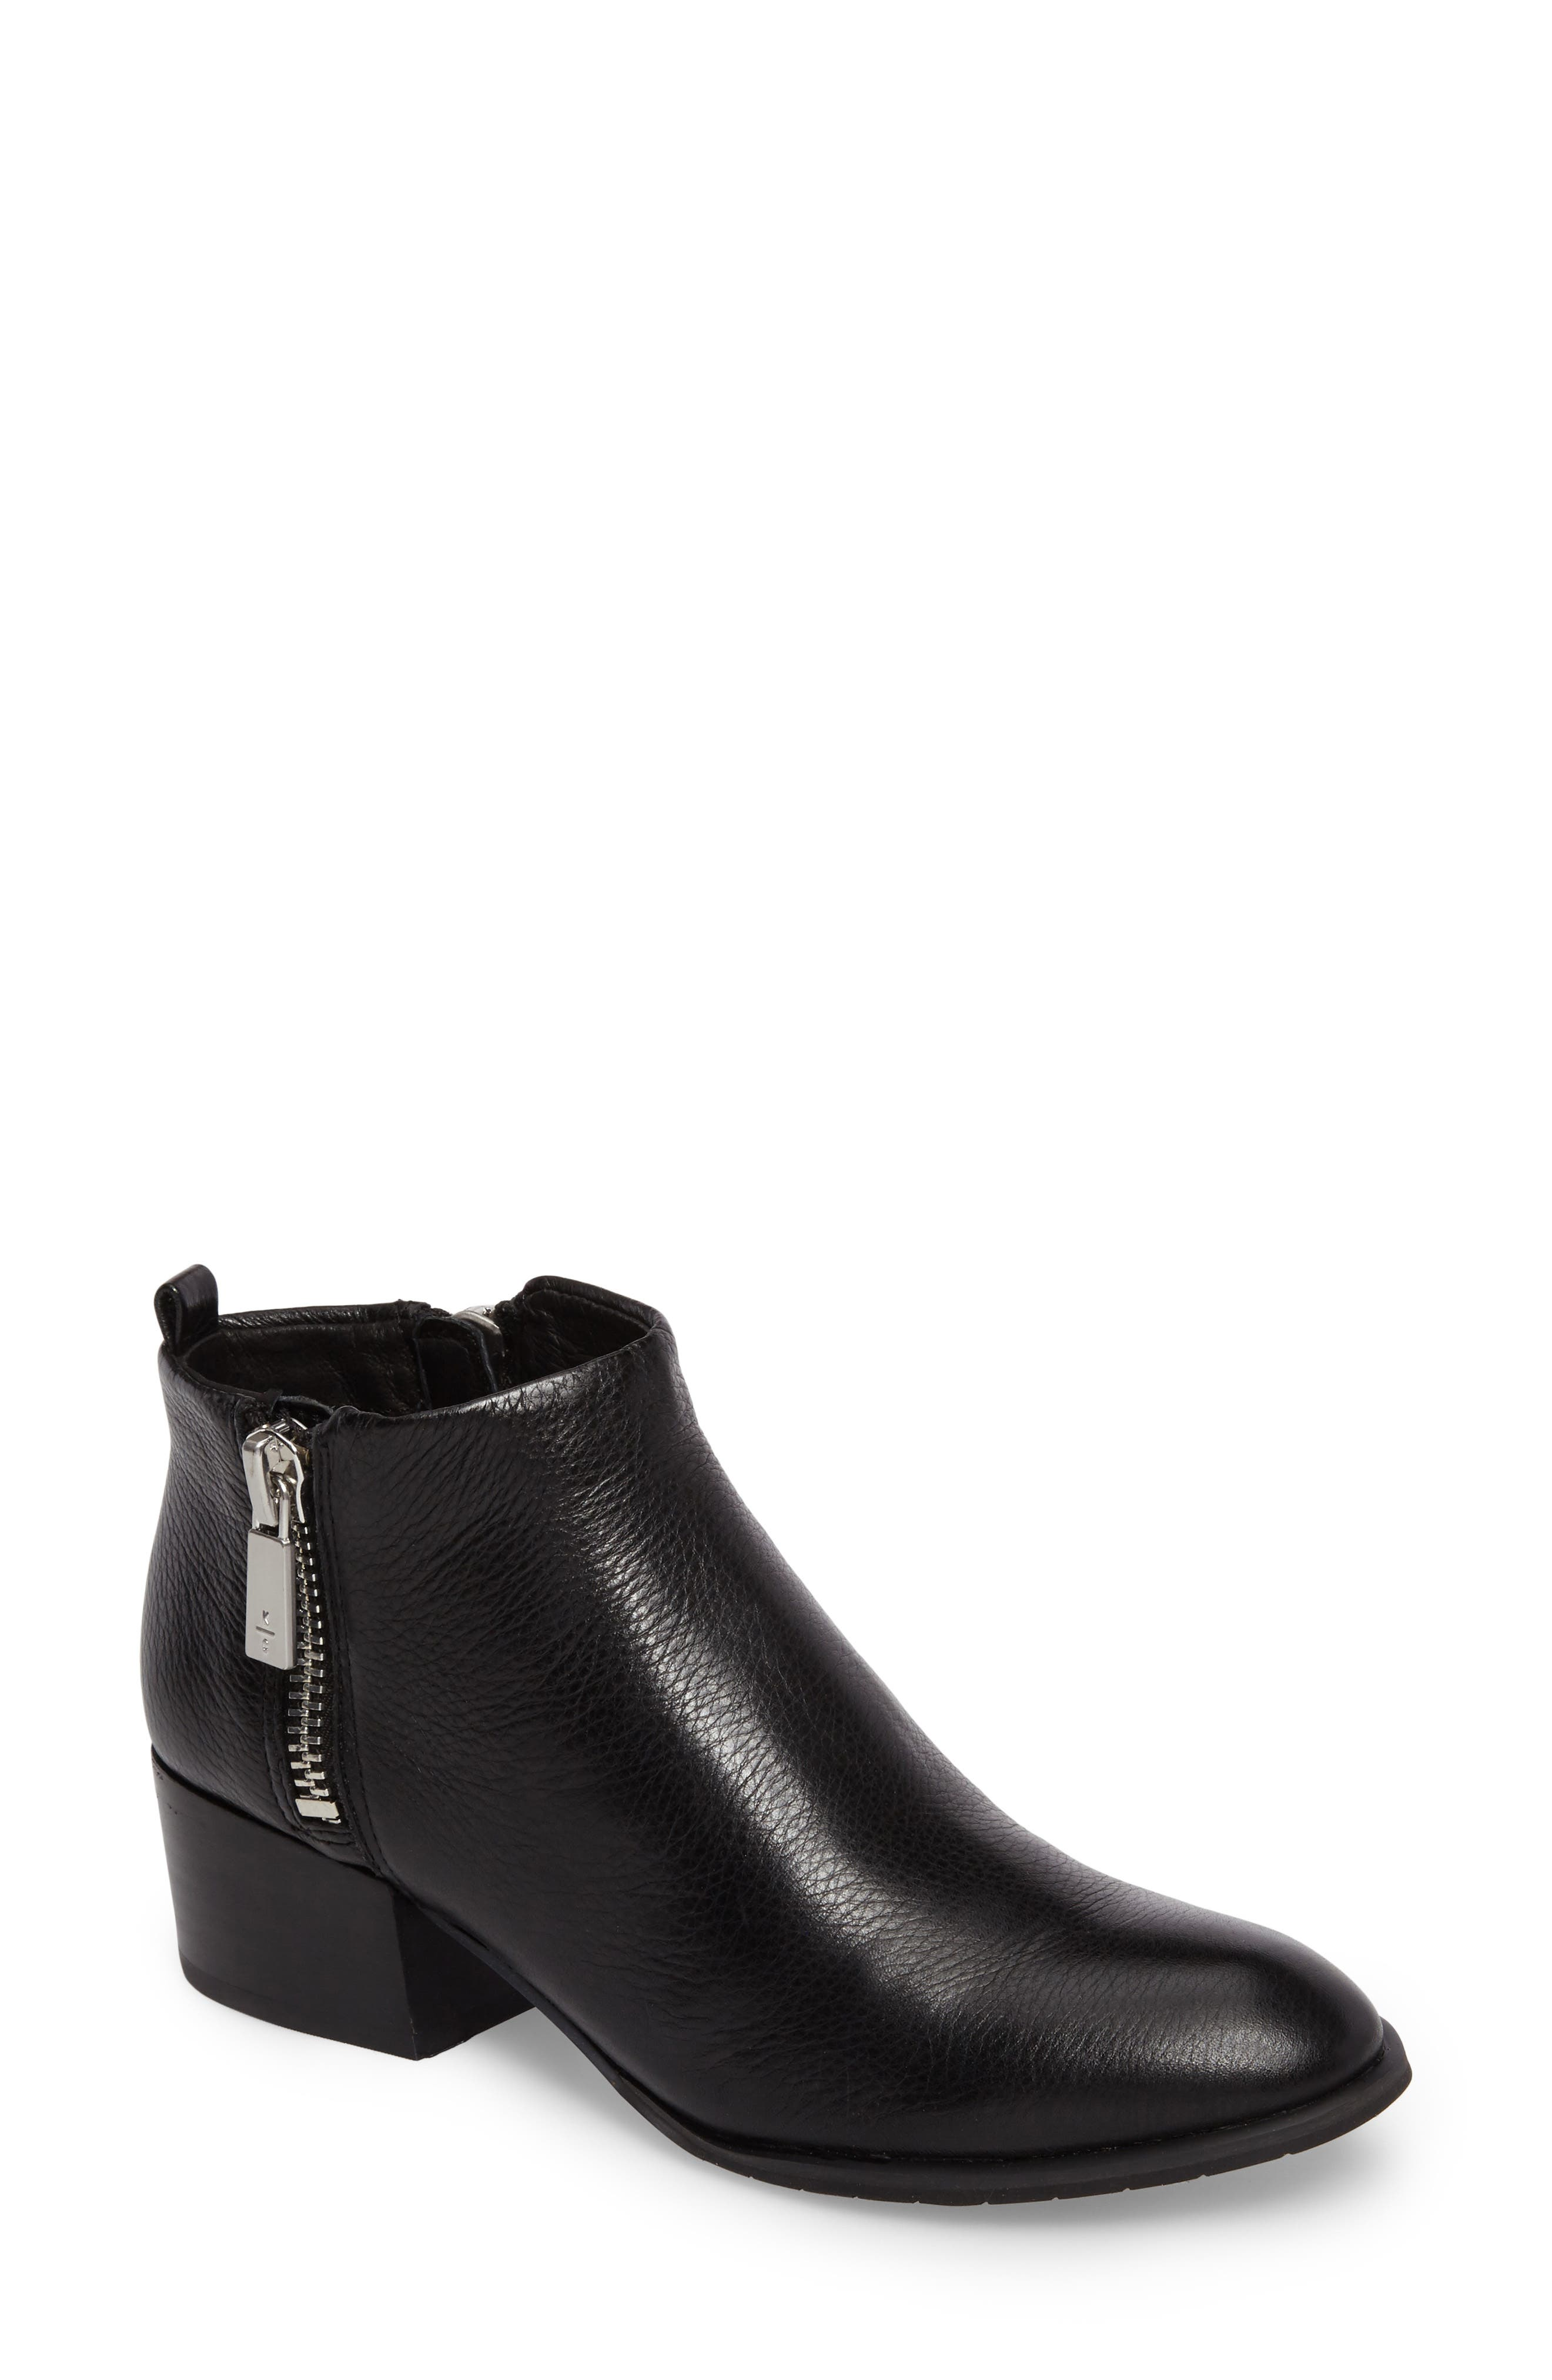 KENNETH COLE NEW YORK, Addy Bootie, Main thumbnail 1, color, 001